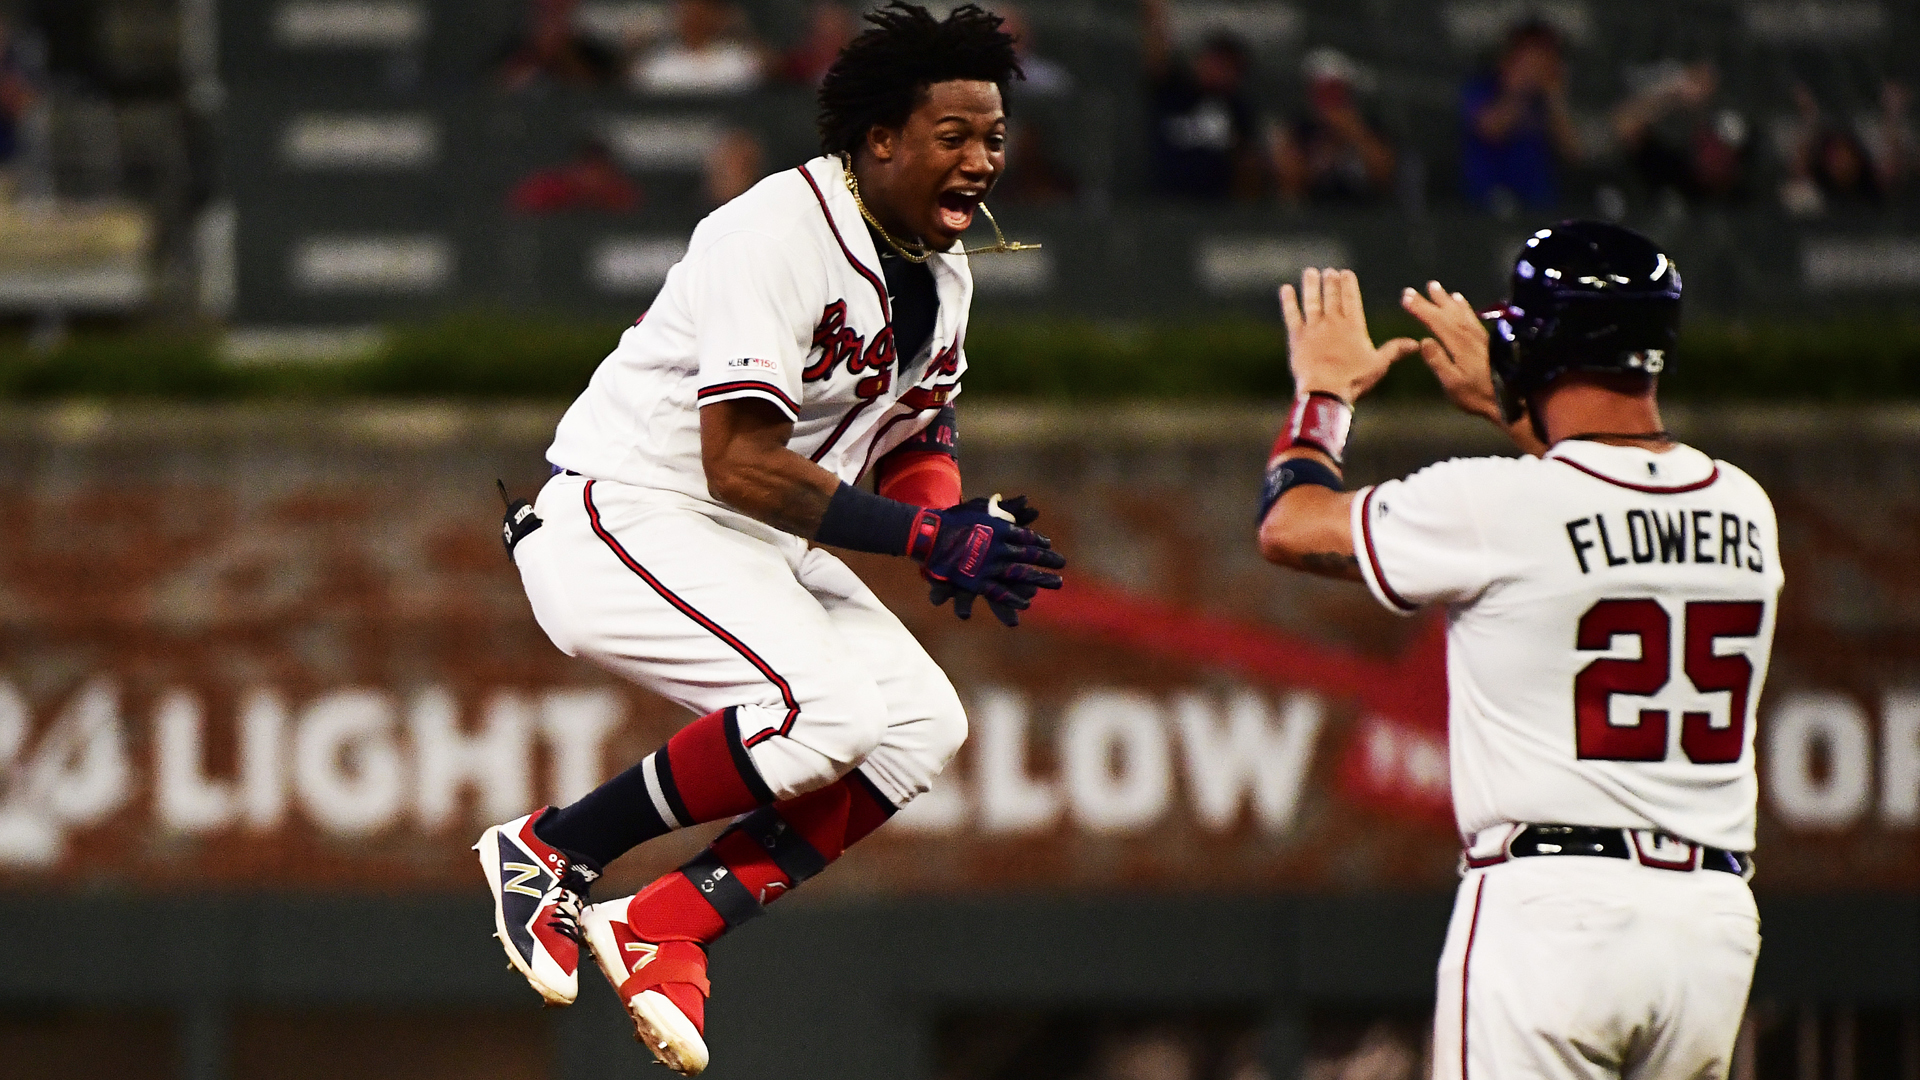 Ronald Acuna Jr. has hit 11 home runs in his last 18 games and delivered a walk-off hit in a tight game with the Marlins.